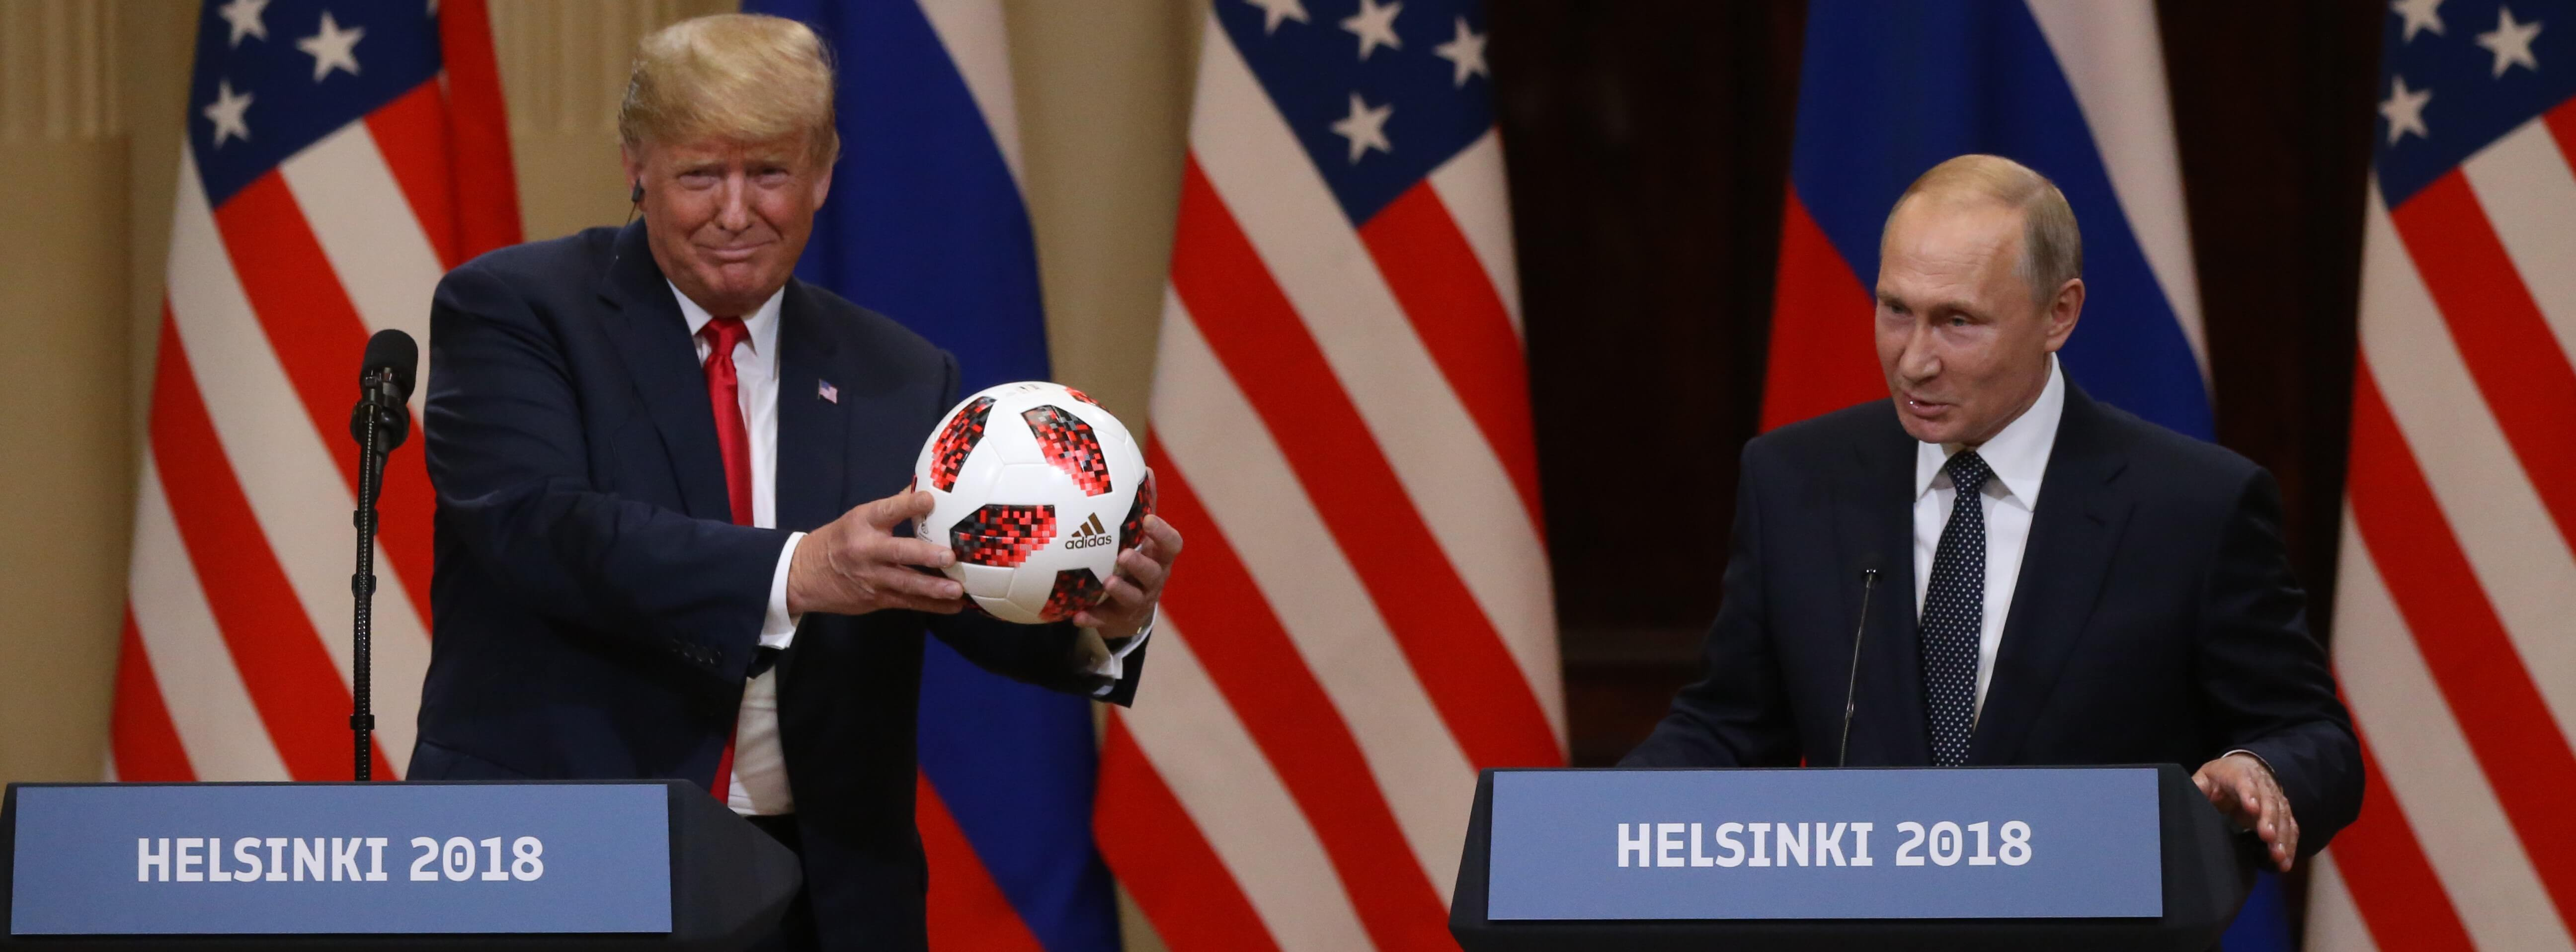 Russian President Vladimir Putin gives US President Donald Trump a football after their summit in Helsinki (Photo: Mikhail Svetlov/Getty)